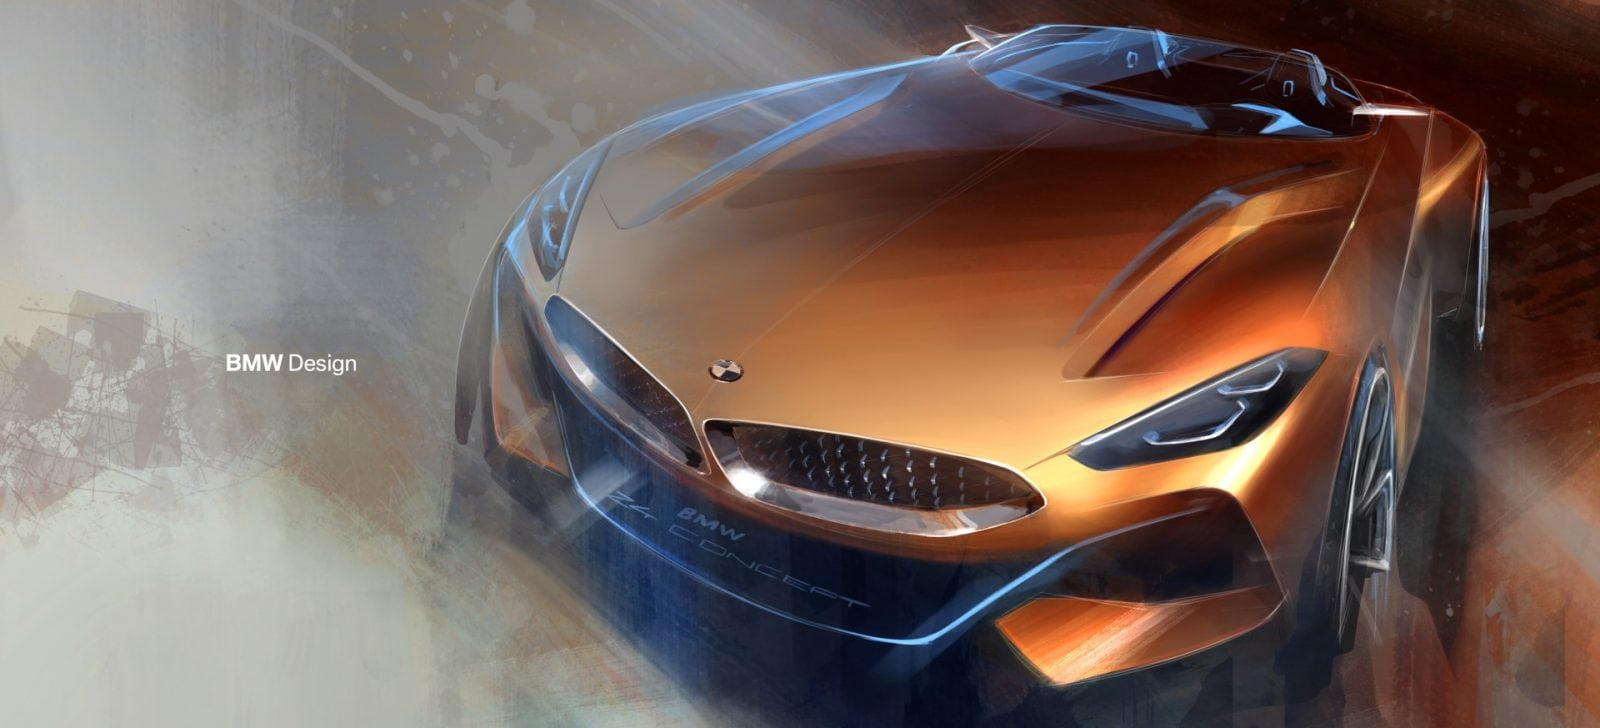 BMW Z4 Concept 2017 Design Sketches and Process